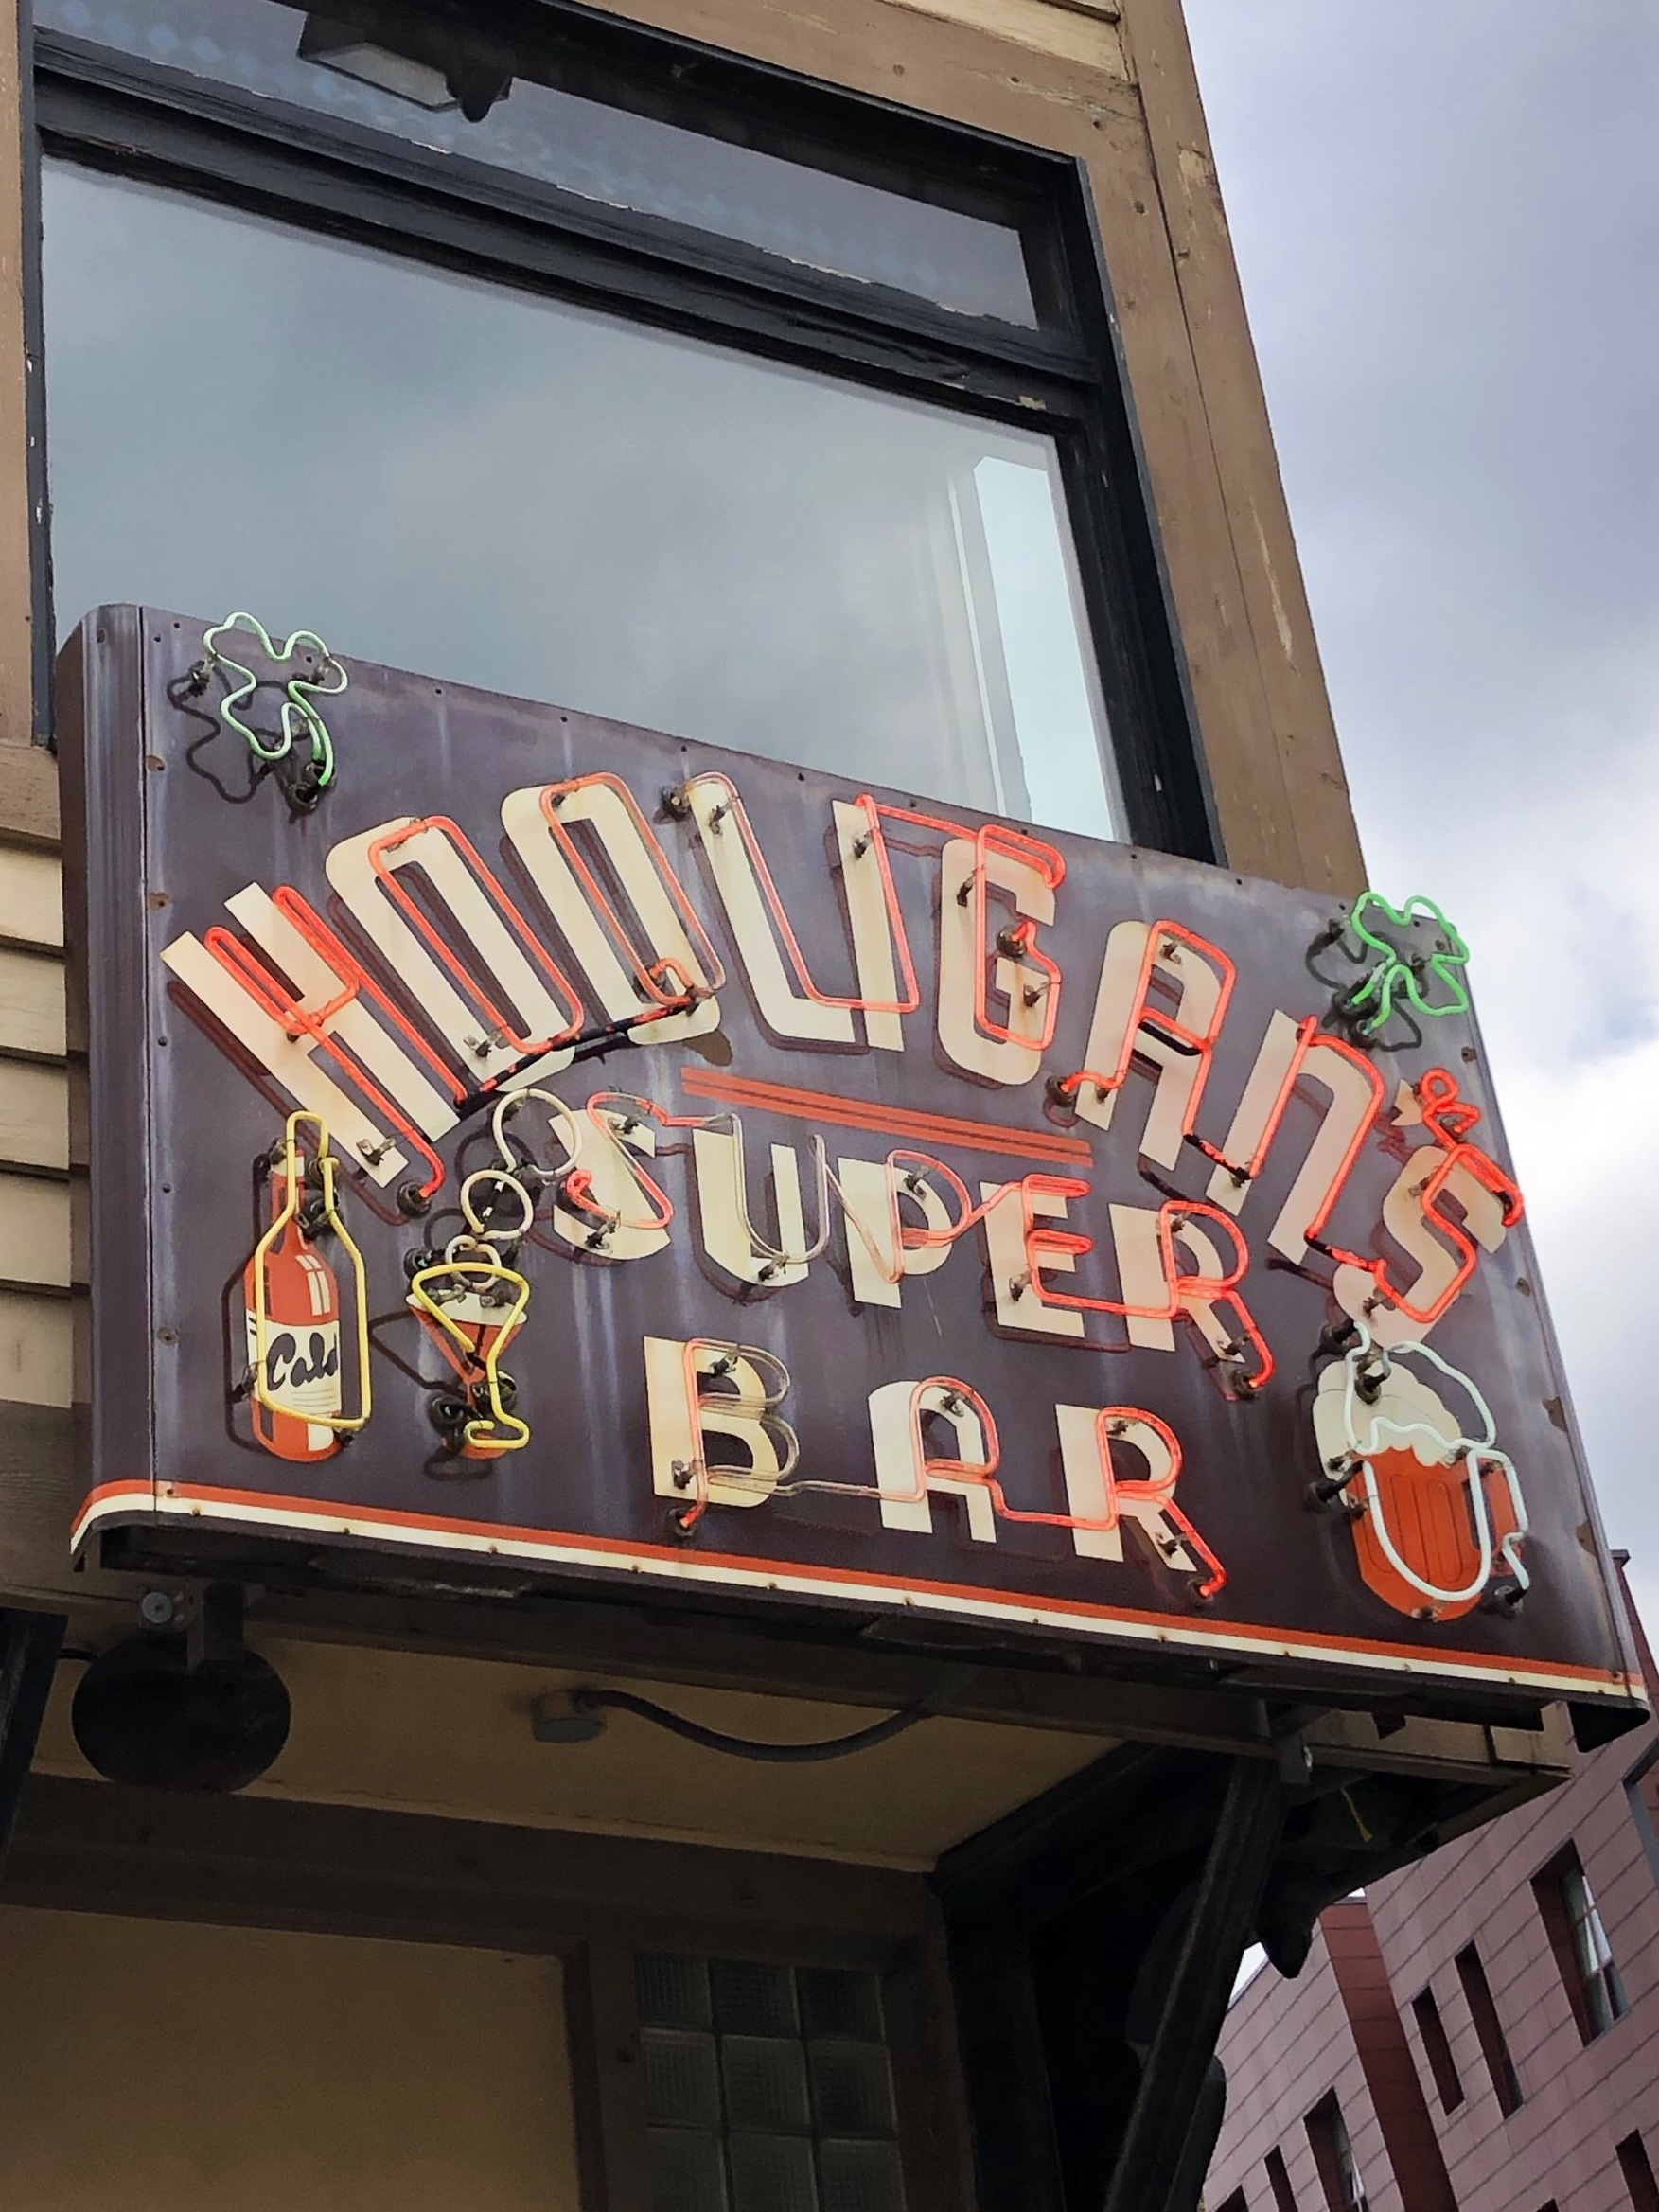 Our favorite Milwaukee Bar - Hooligan's. We've been visiting Hooligan's since the mid-80's.